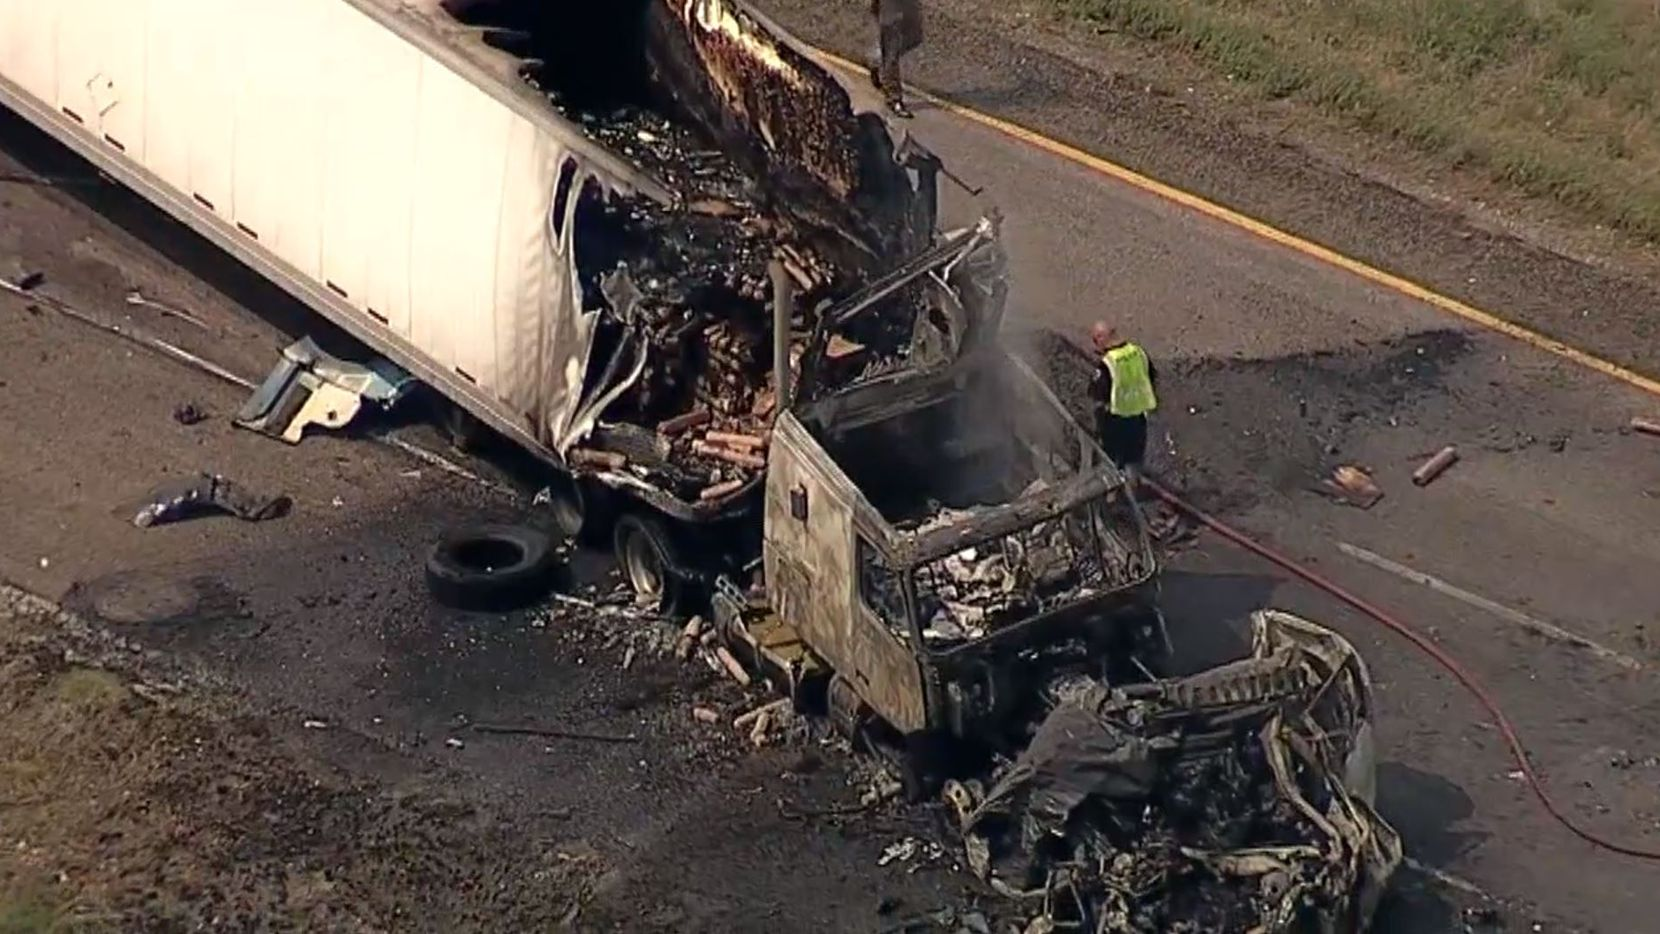 Three people died when an SUV was pinned between two 18-wheelers in Terrell on Tuesday afternoon.